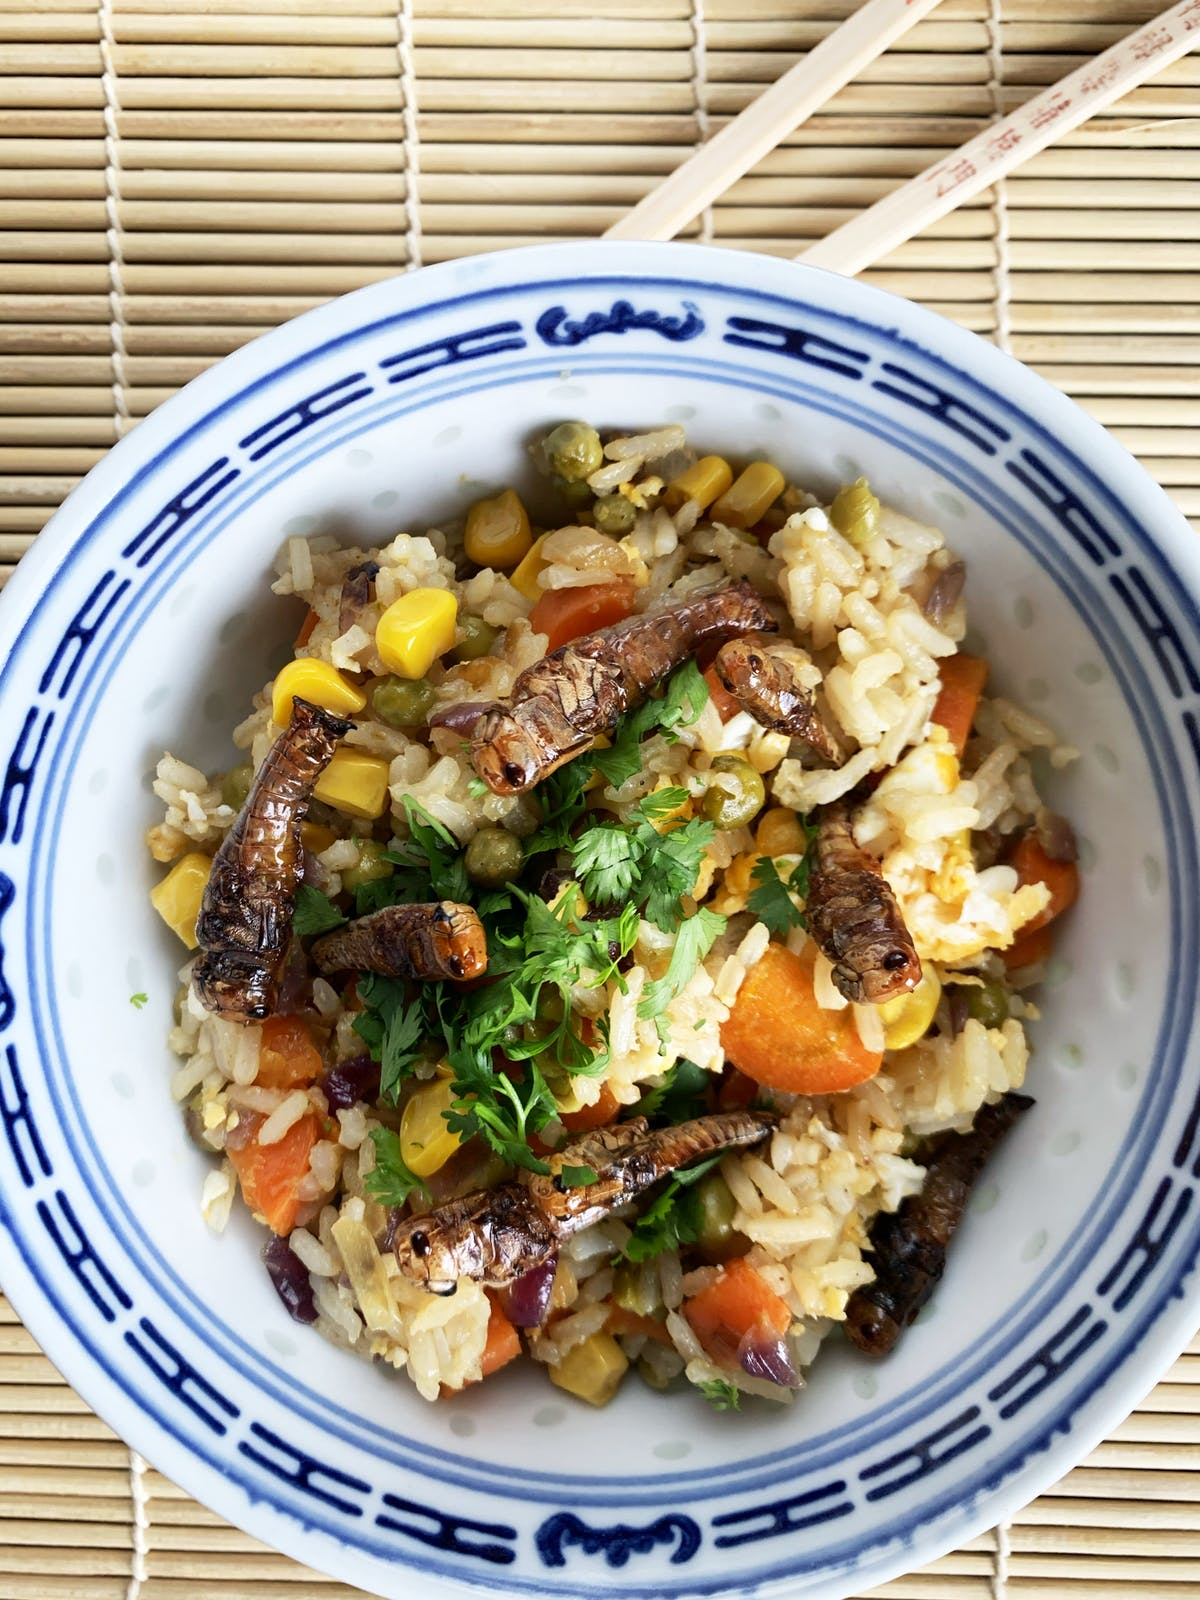 Fried rice topped with grasshoppers